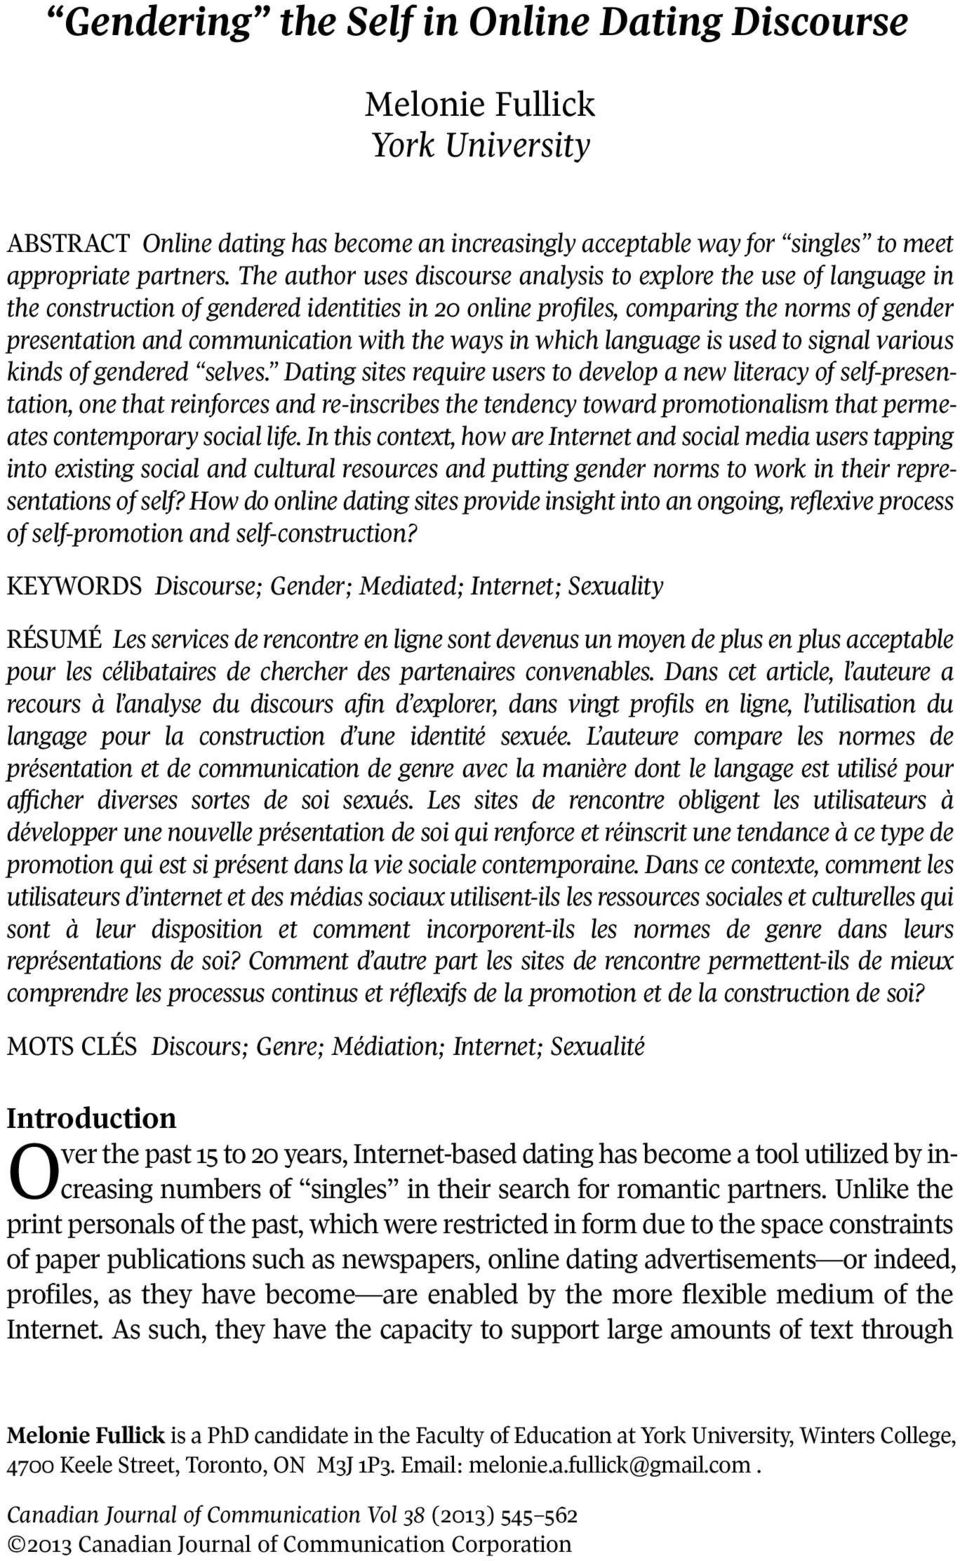 Gendering the self in online dating discourse on method